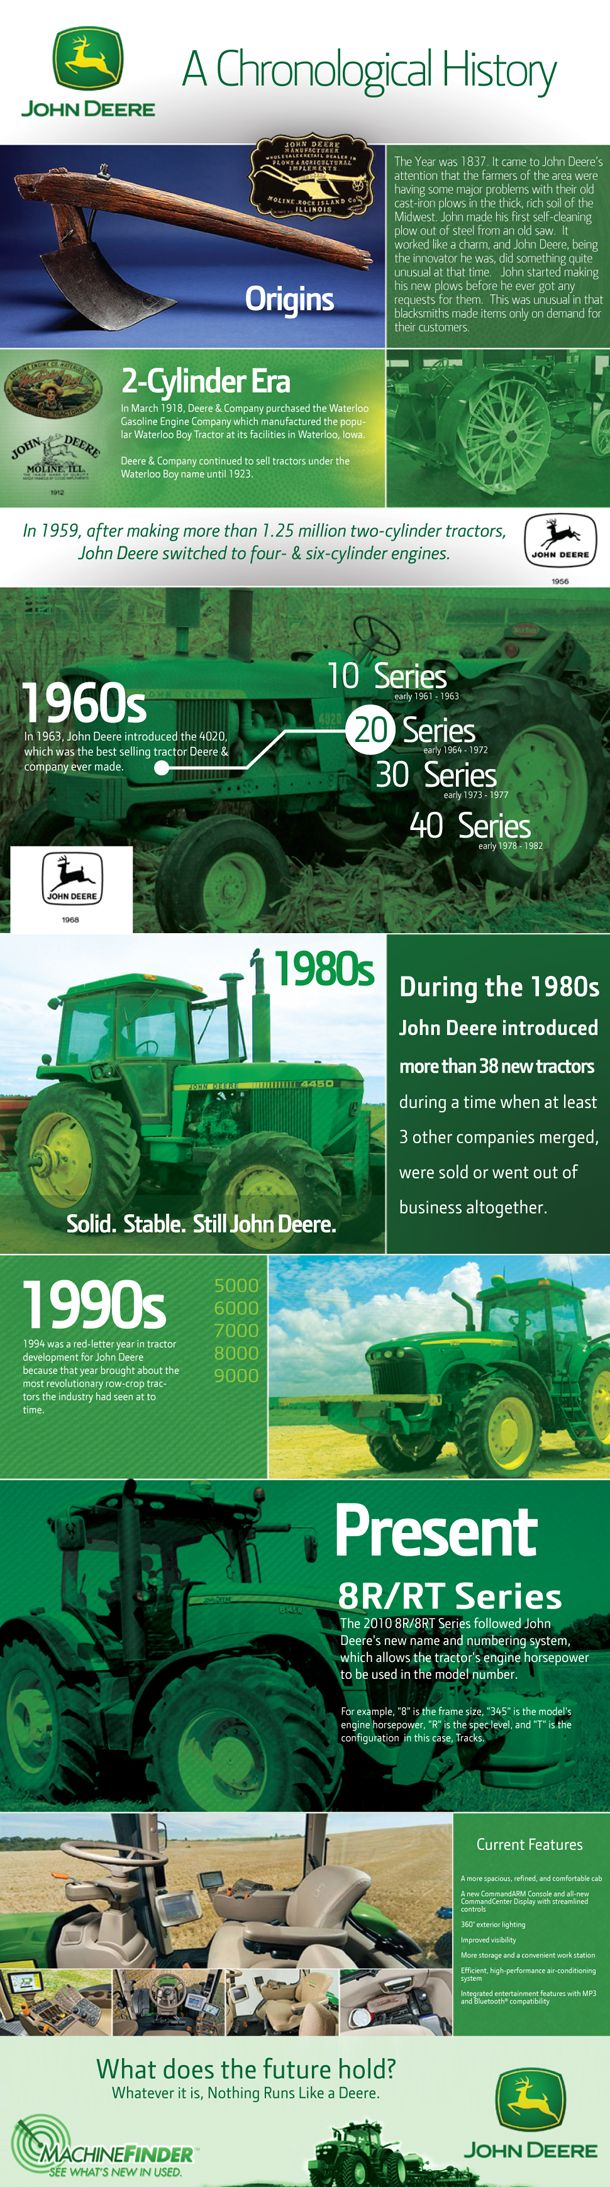 Evolution of the John Deere Tractor Infographic